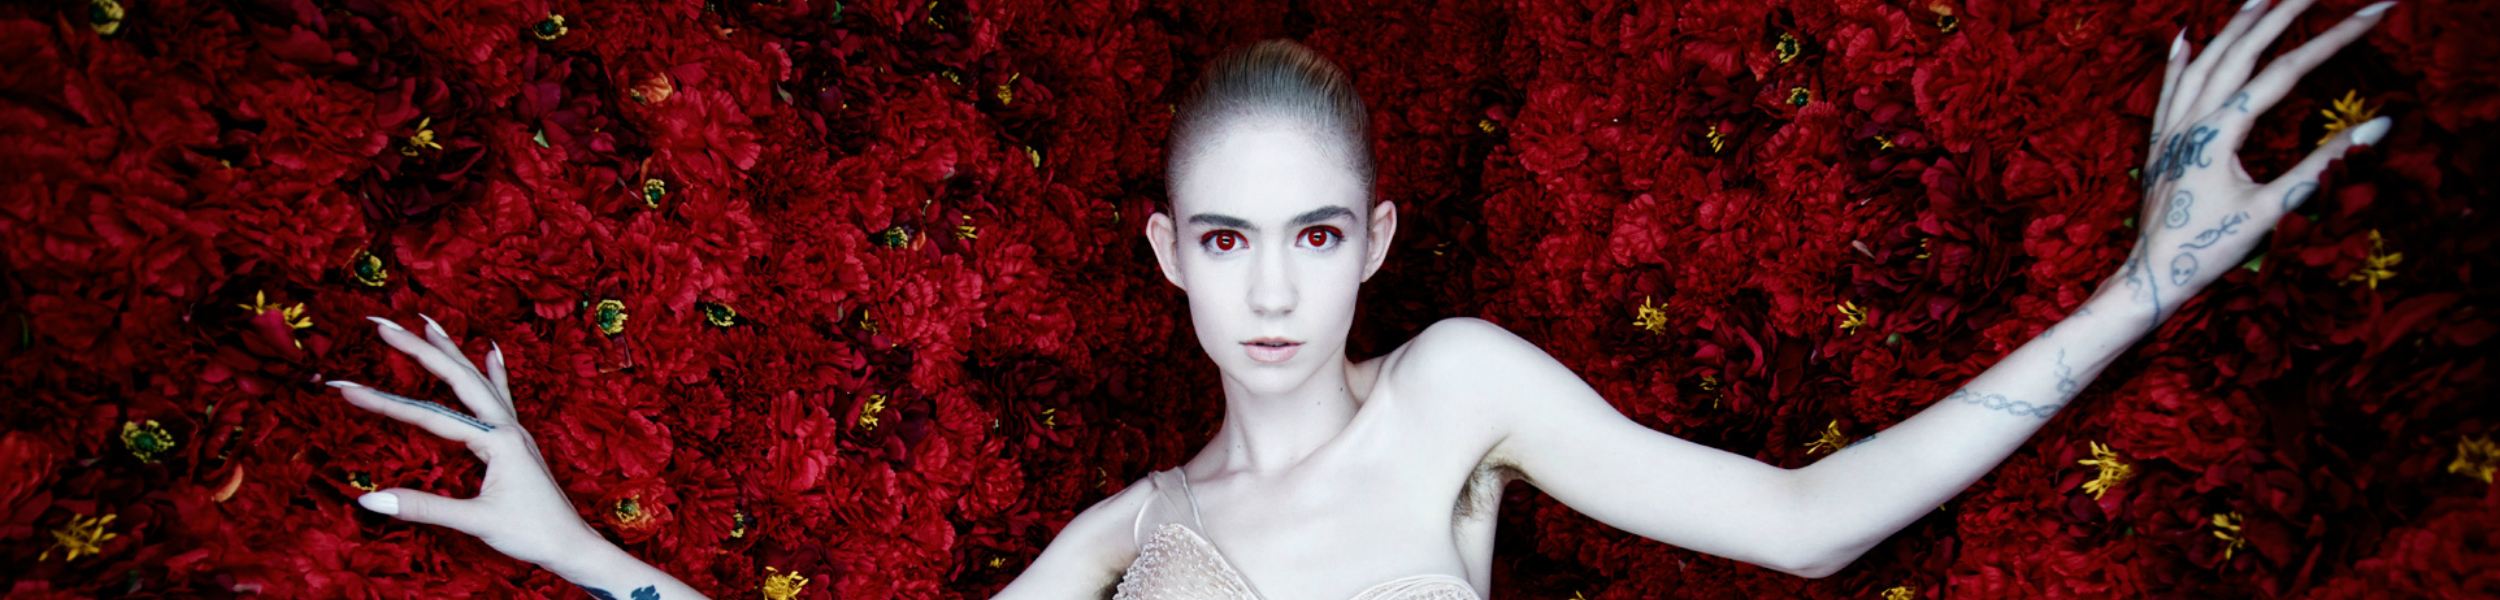 Grimes - Watch the New Video for Grimes' 'Oblivion'